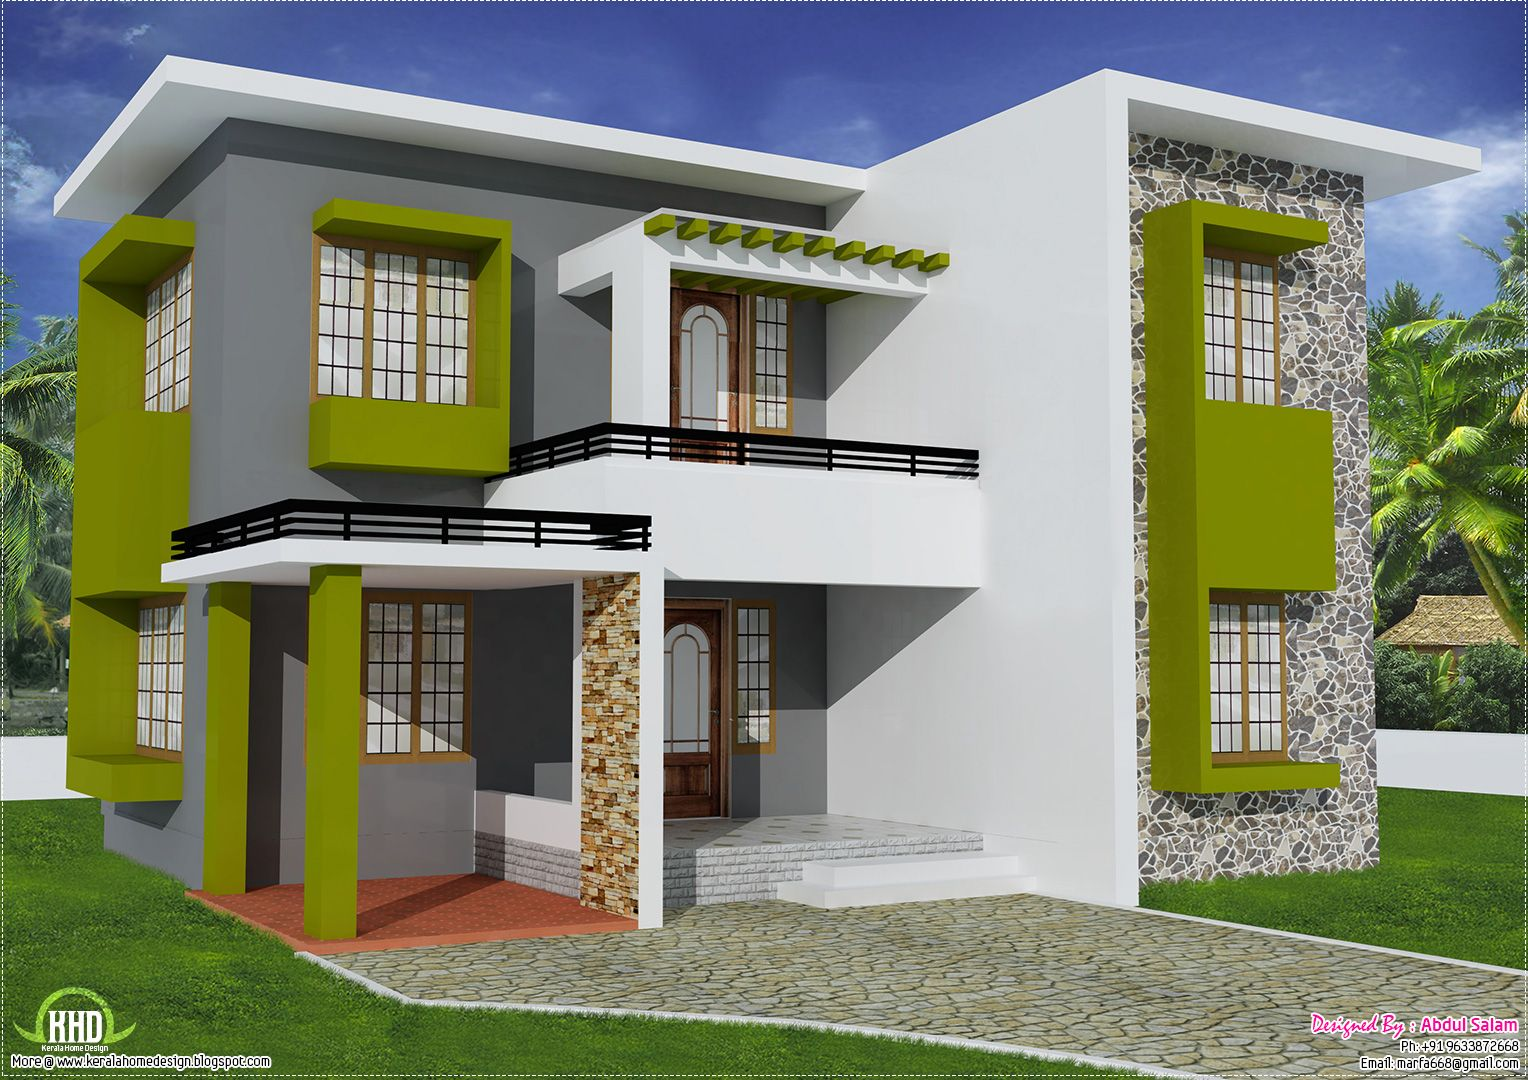 Sq feet flat roof home design house design plans roof for Kerala home design flat roof elevation